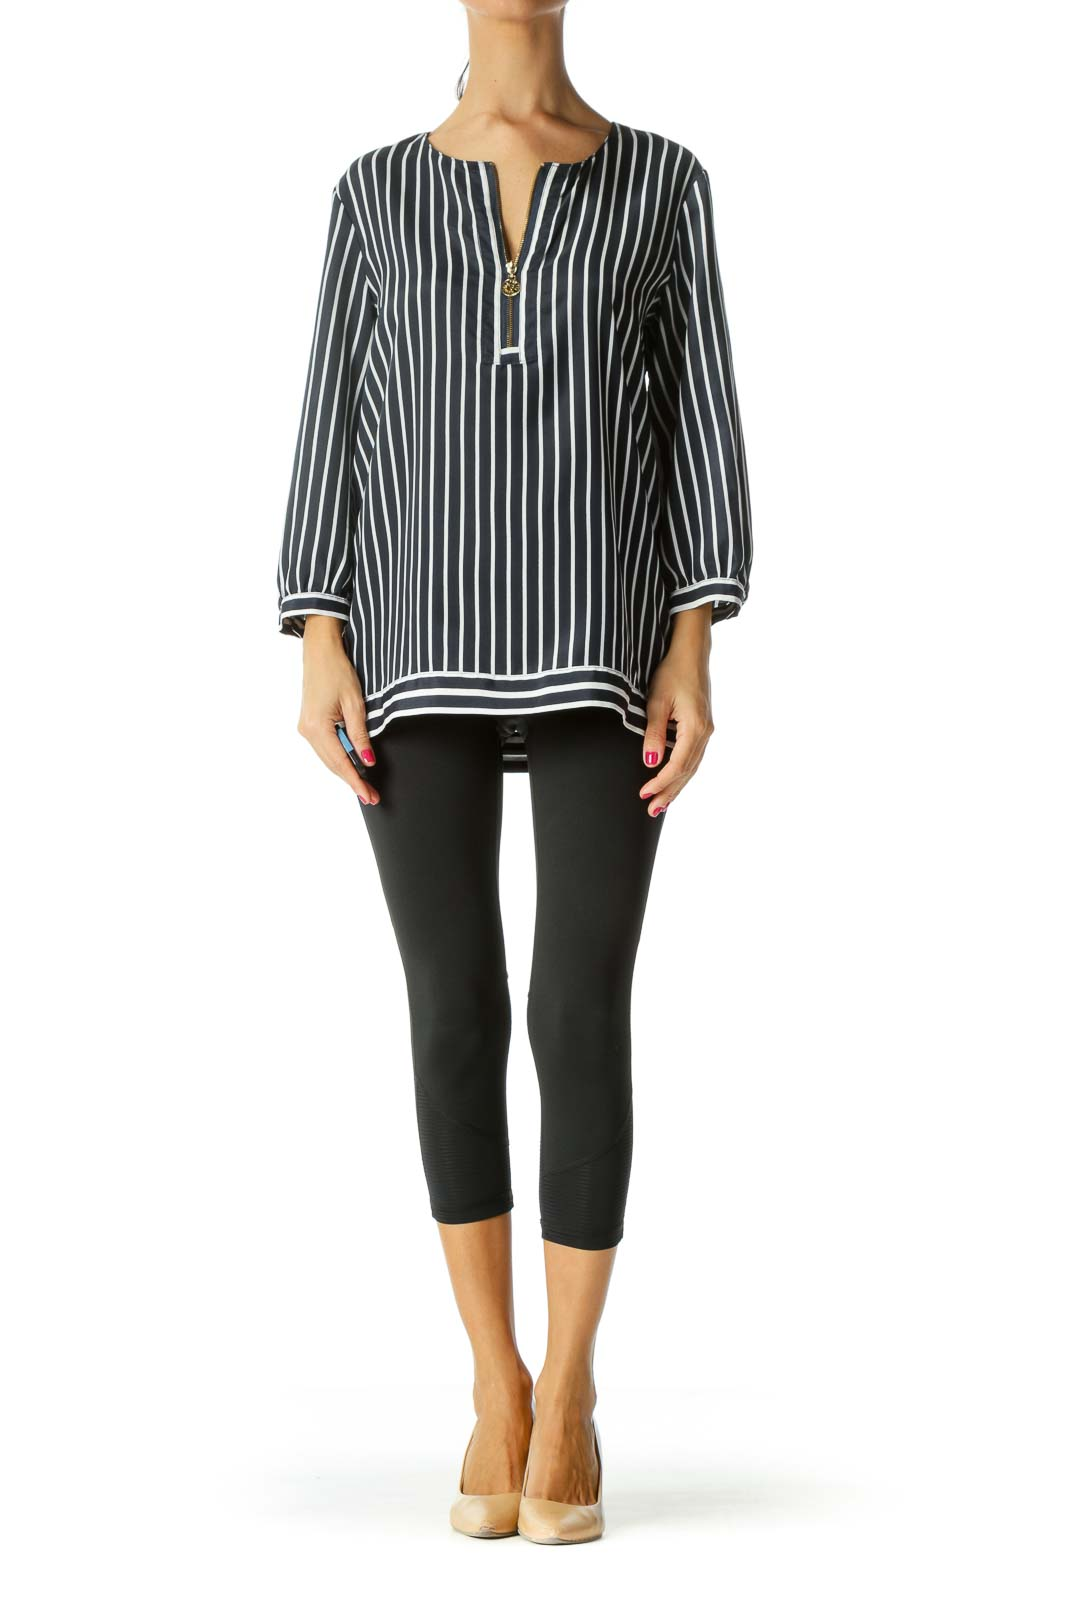 Navy Visible Front Zip Striped Blouse